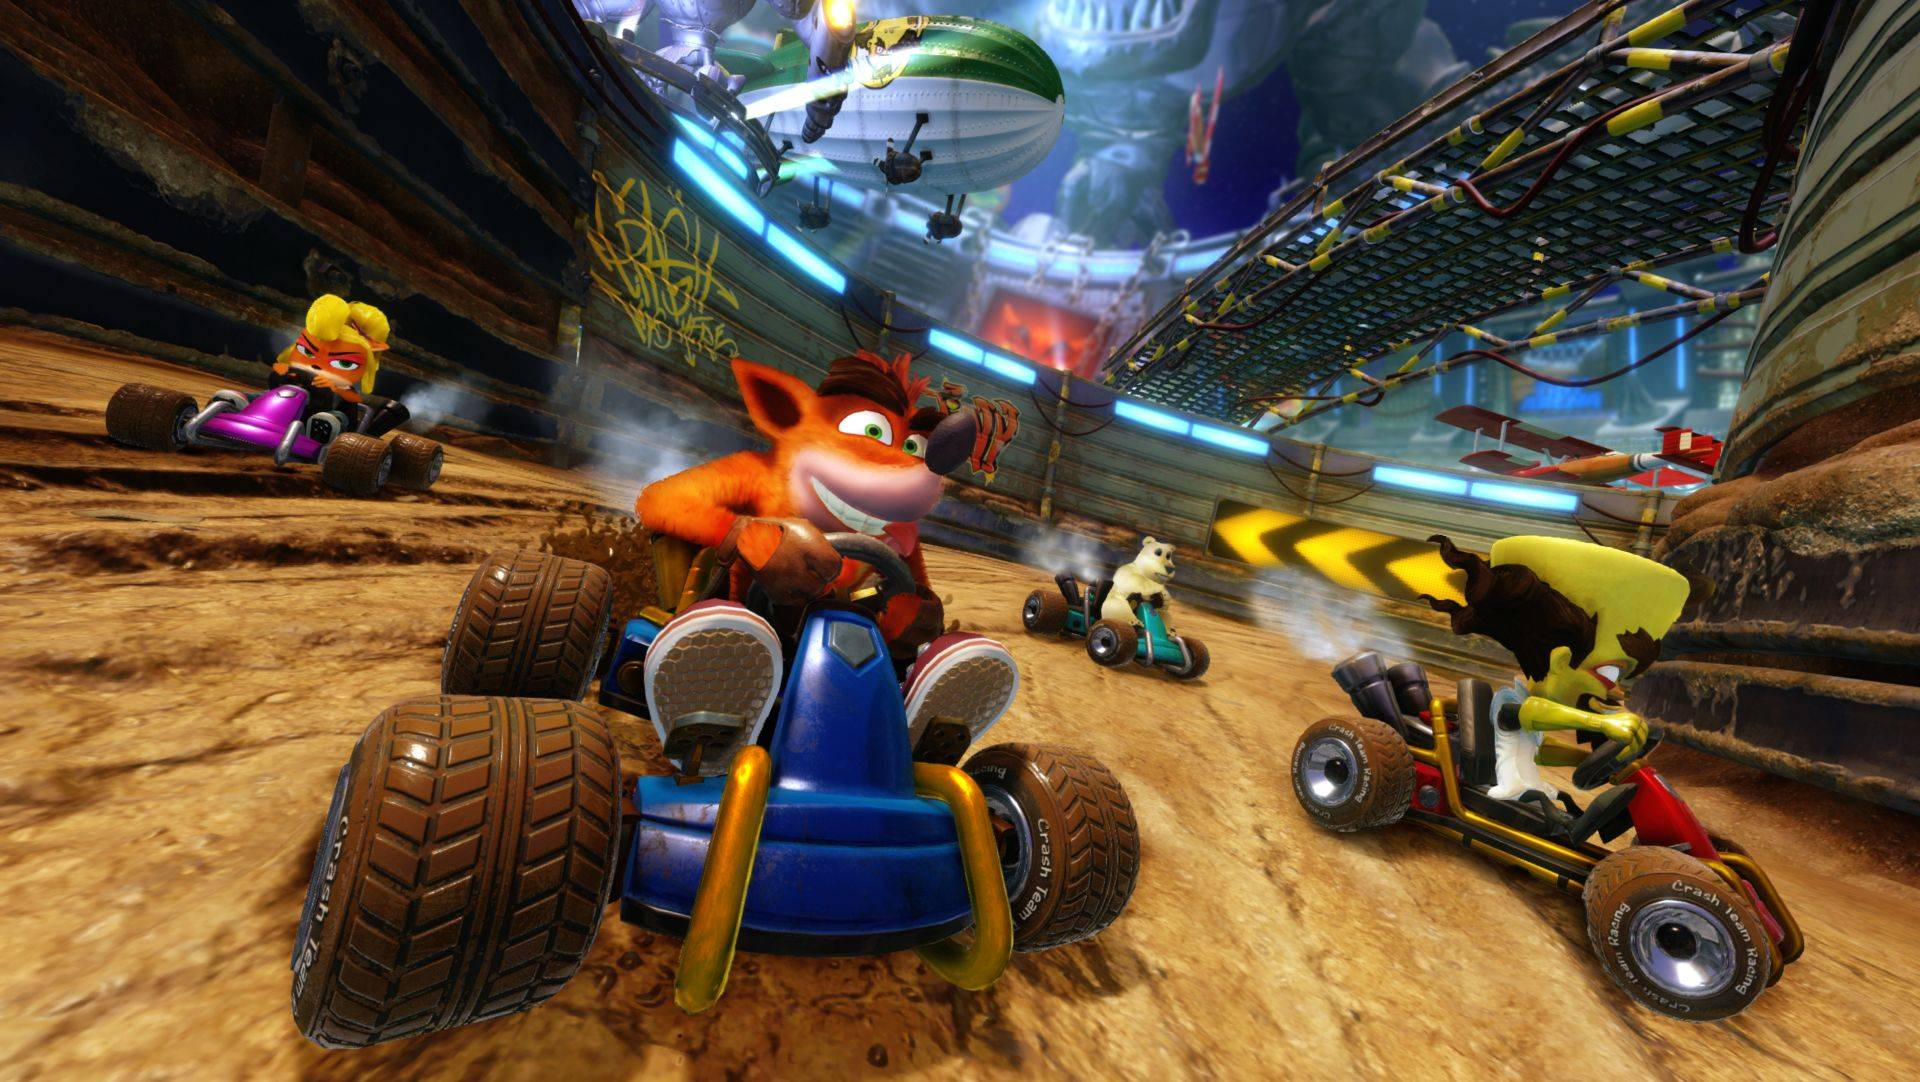 Anunciado Crash Team Racing Nitro-Fueled para Switch, PS4 y Xbox One